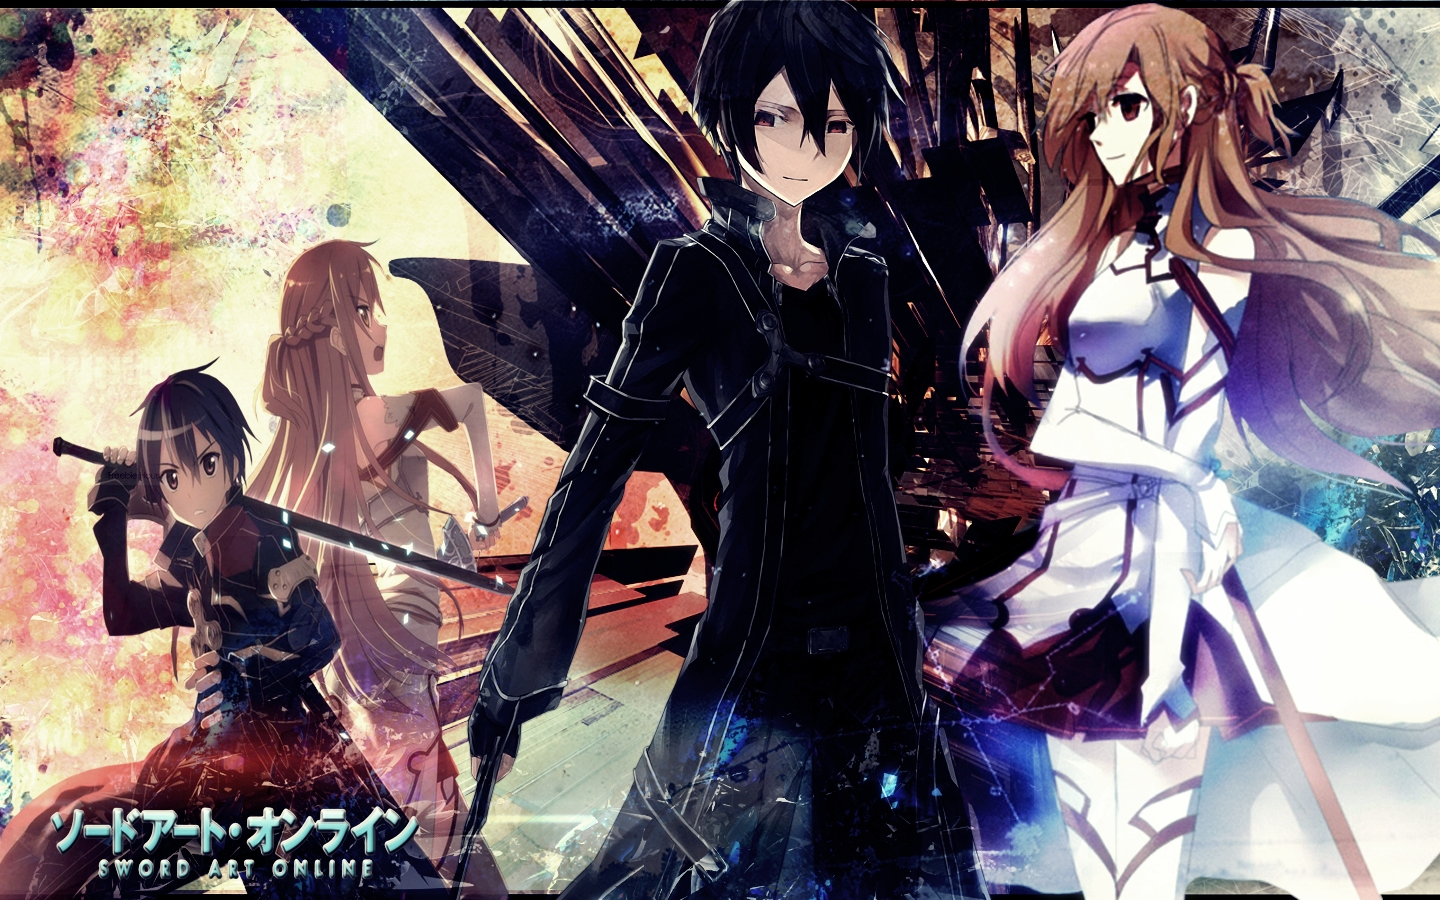 Sword Art Online Wallpaper By Lyuno On Deviantart